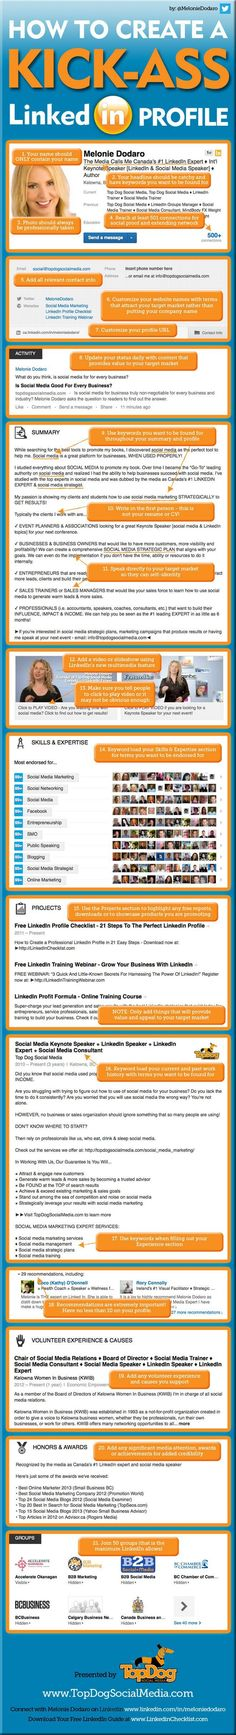 21 Steps to Create an Awesome LinkedIn Profile